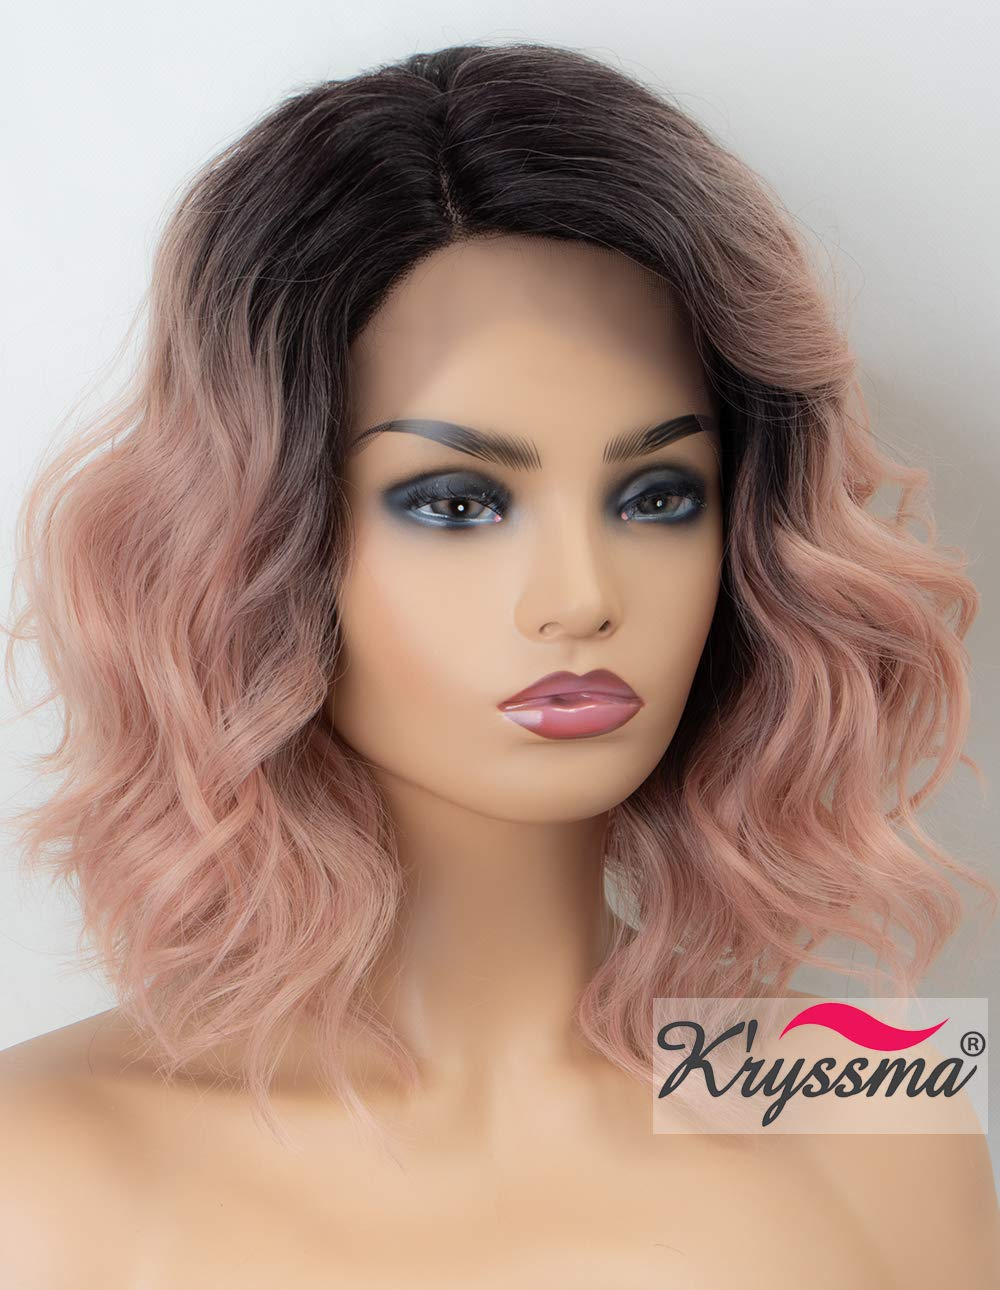 K'ryssma Ombre Pink Lace Front Wig Wavy Rose Blonde Short Bob Synthetic Wig with Dark Roots L Part Pastel Pink Ombre Wigs with Deep Side Parting